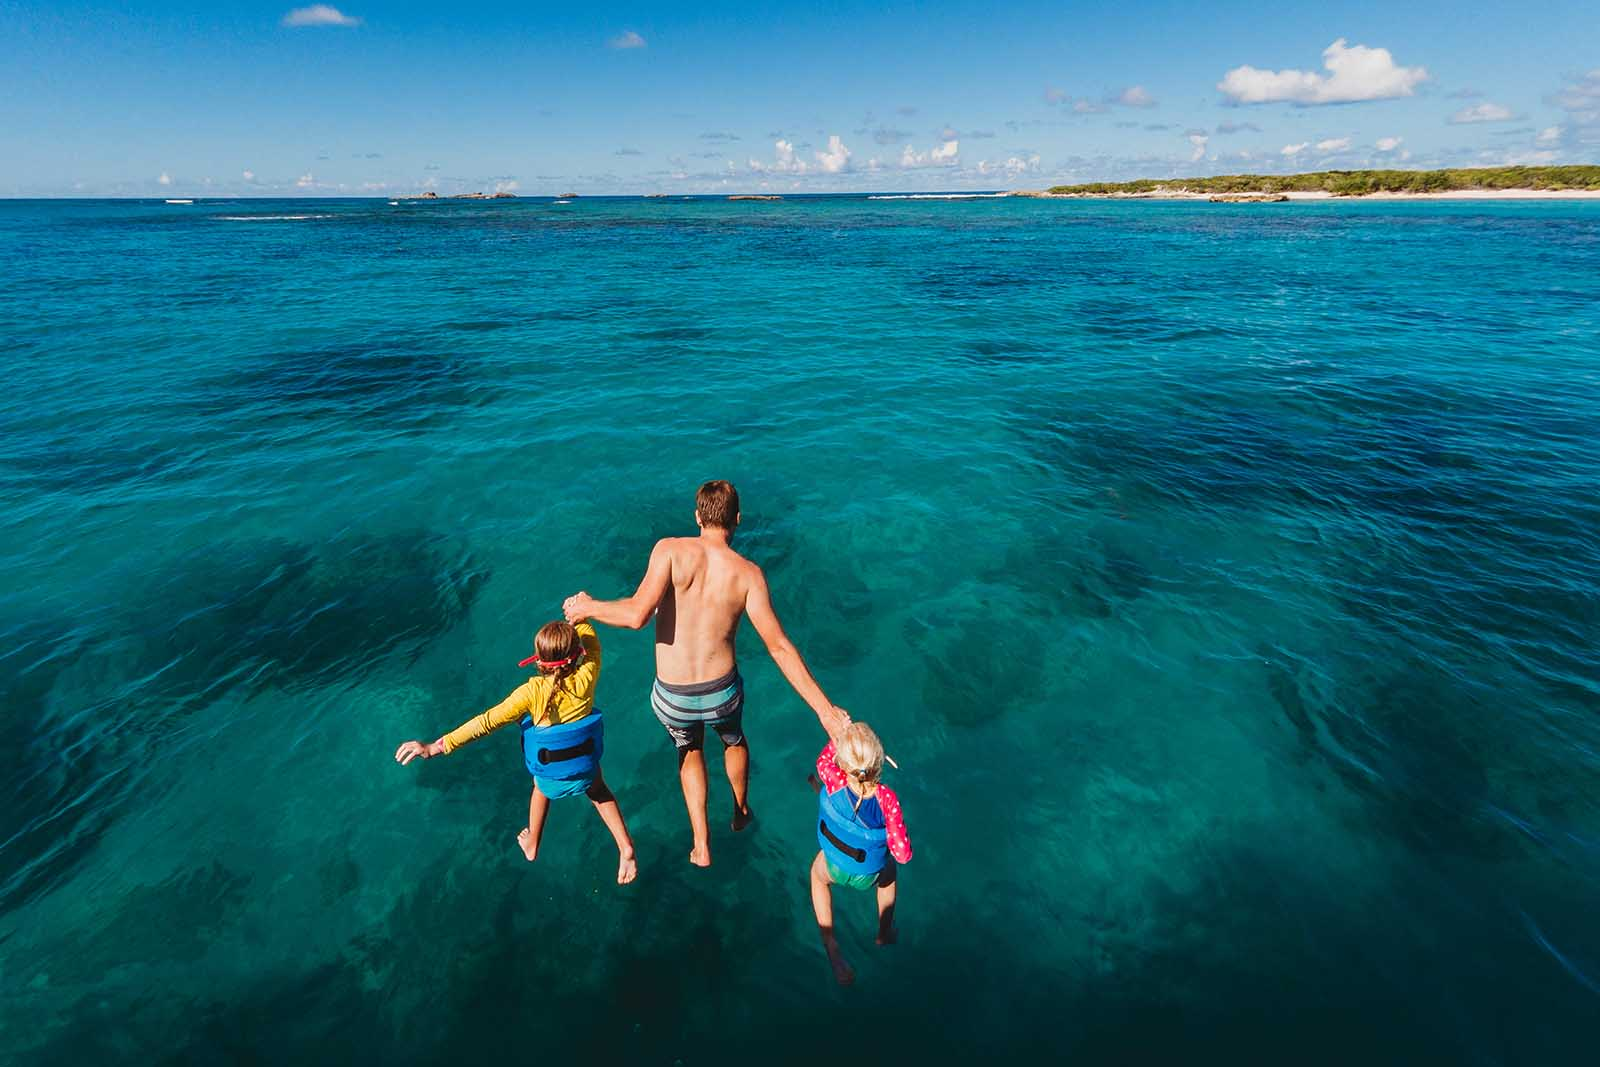 Kids jumping into the ocean with their dad - color in photos